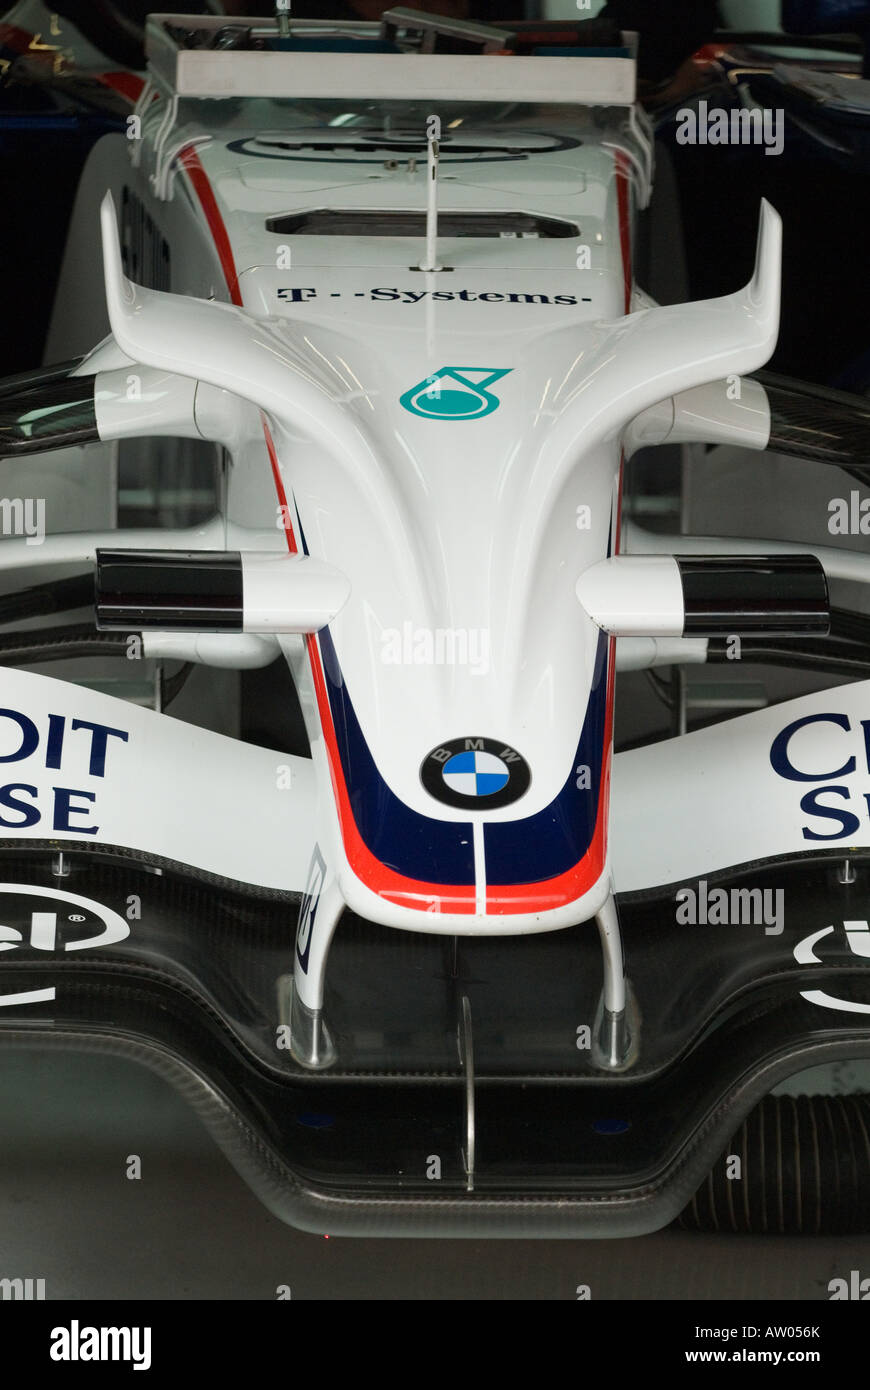 front wings on the BMW F1 08 during testing sessions in Feb 2008 - Stock Image